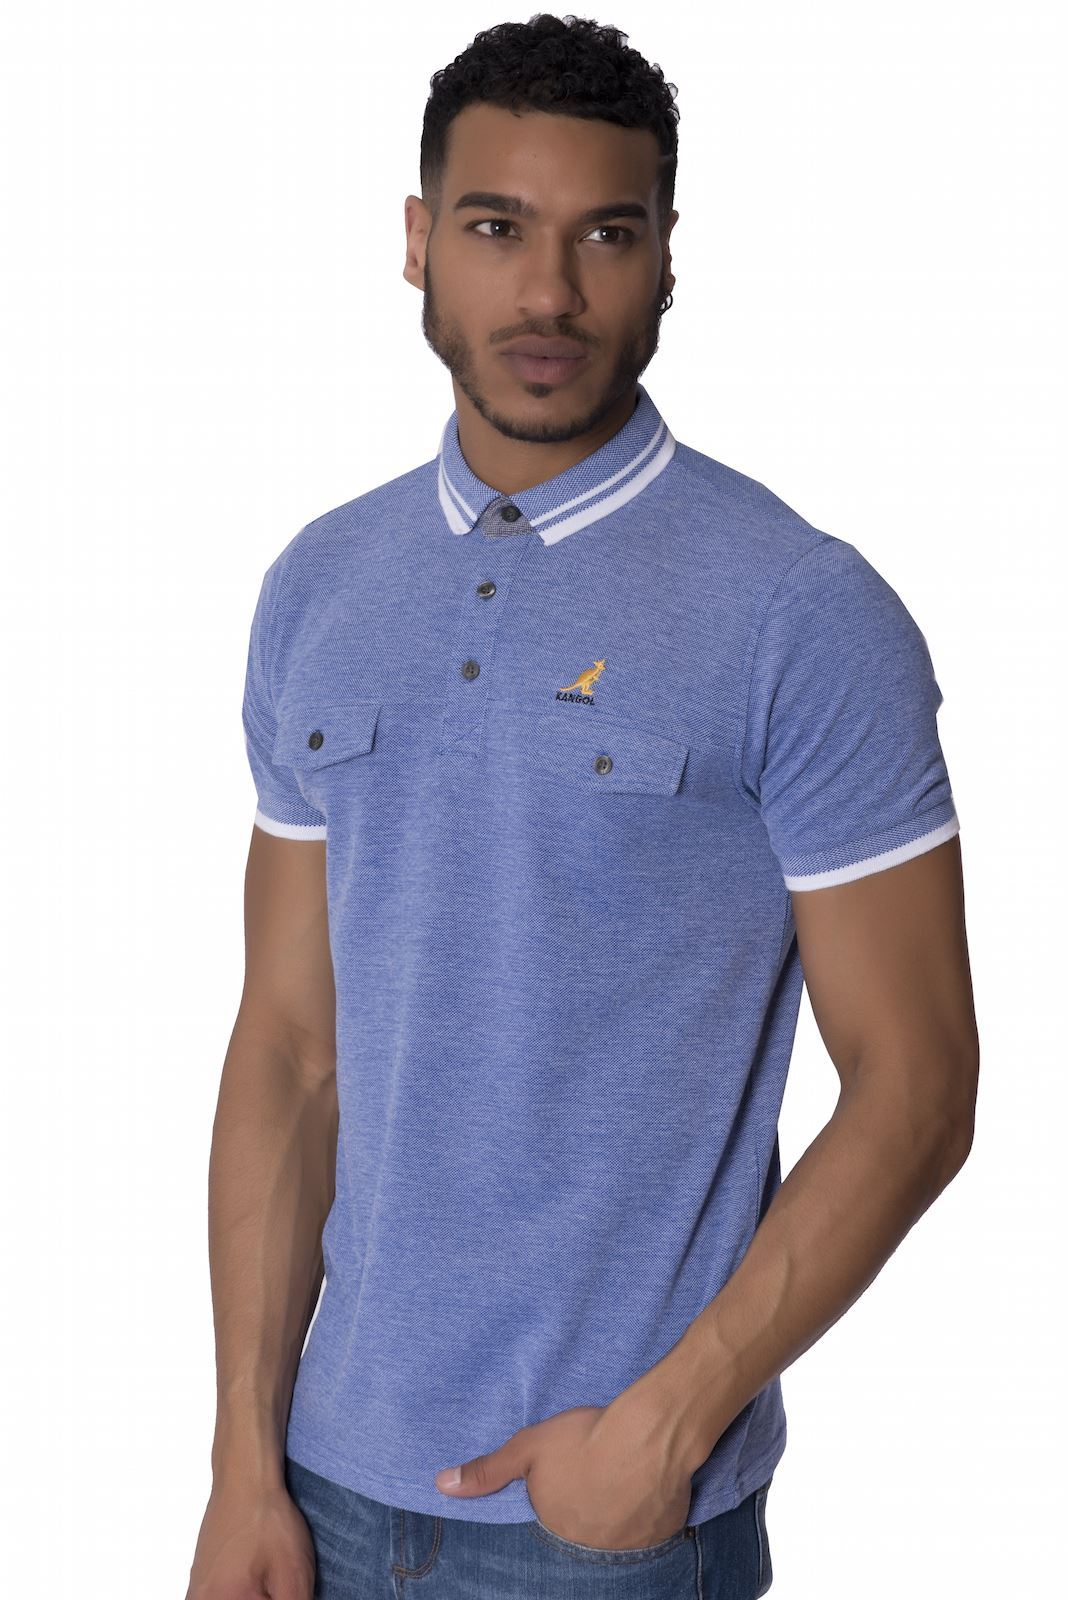 Kangol mens branded polo shirt chest pocket button up for Branded polo t shirts